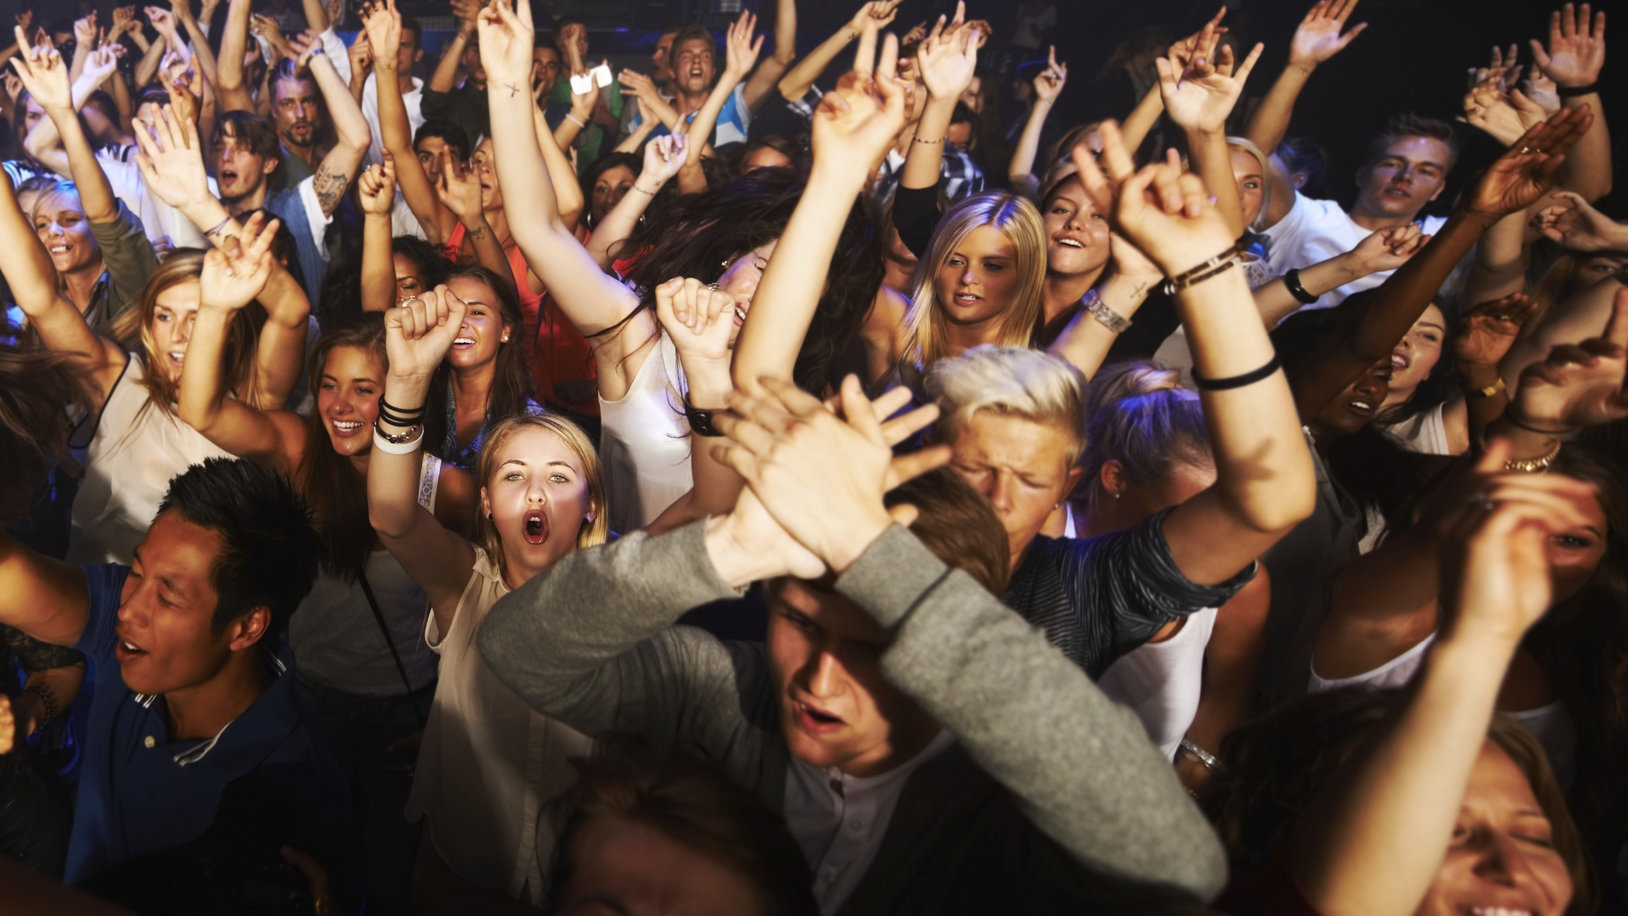 SCHOOLS - From homecoming dances to proms we know exactly how to get the entire place lit! We party hard with the students, while also respecting the school administration.